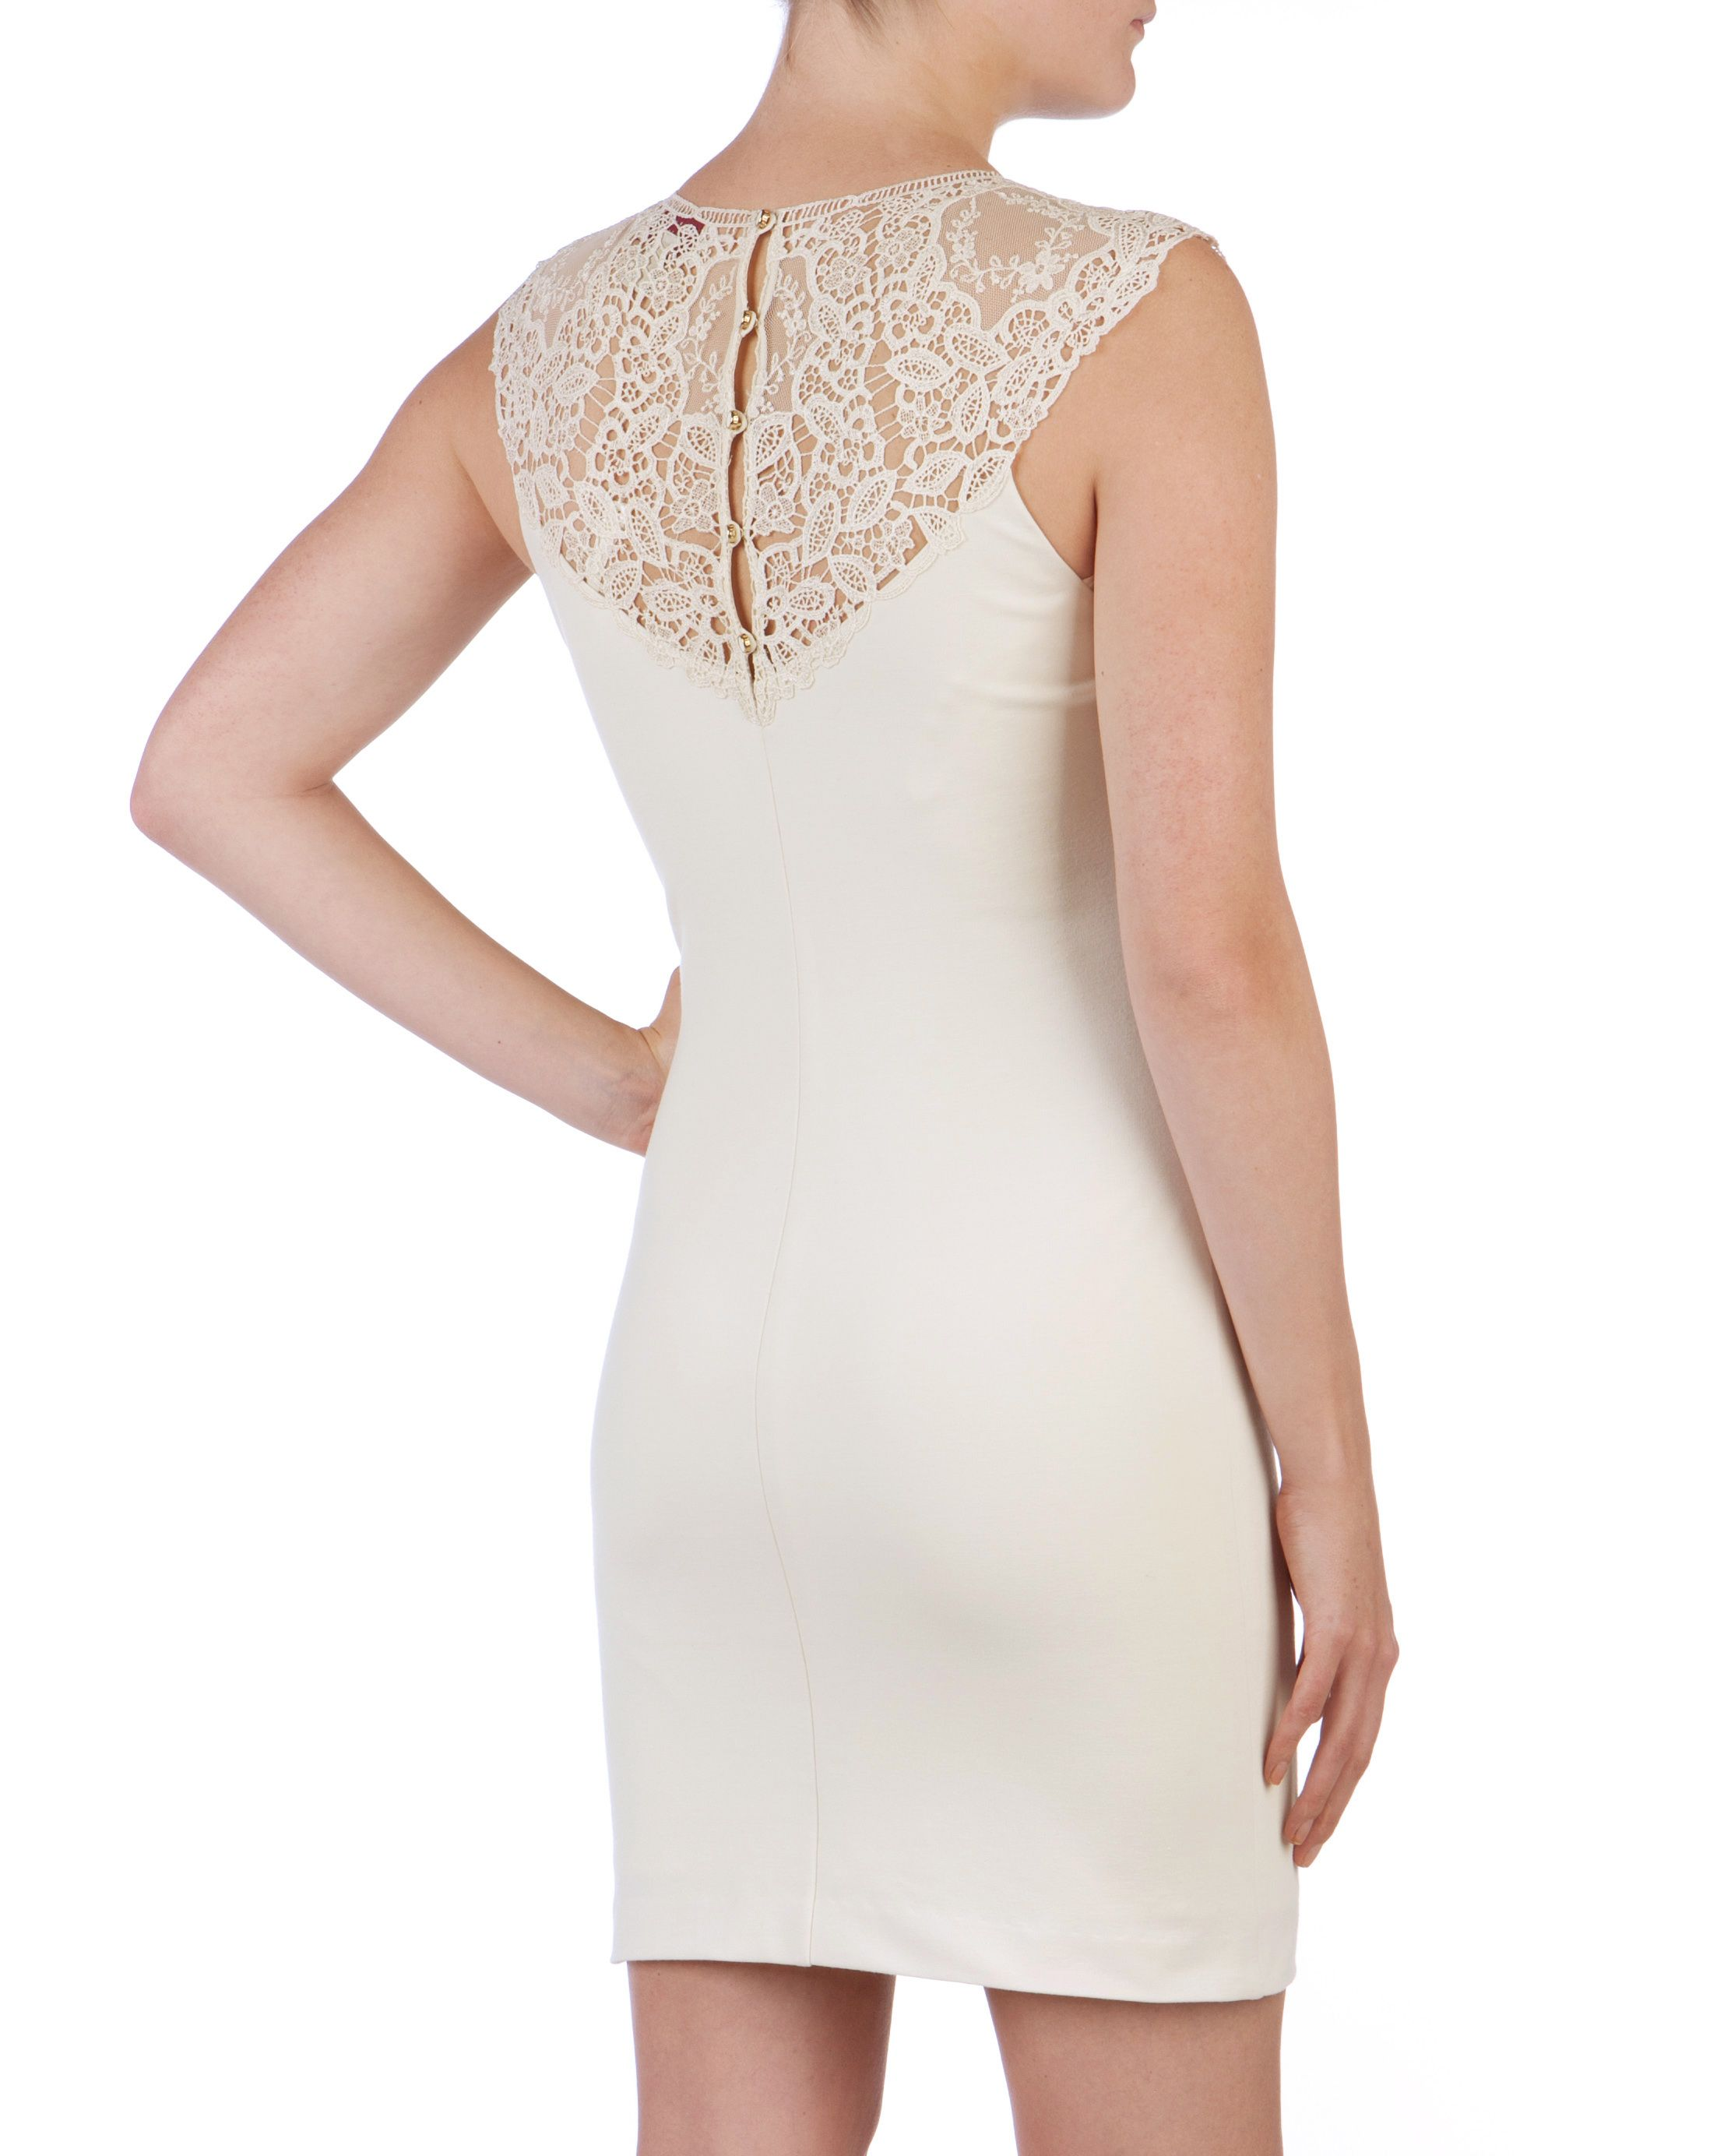 Violina lace trim dress